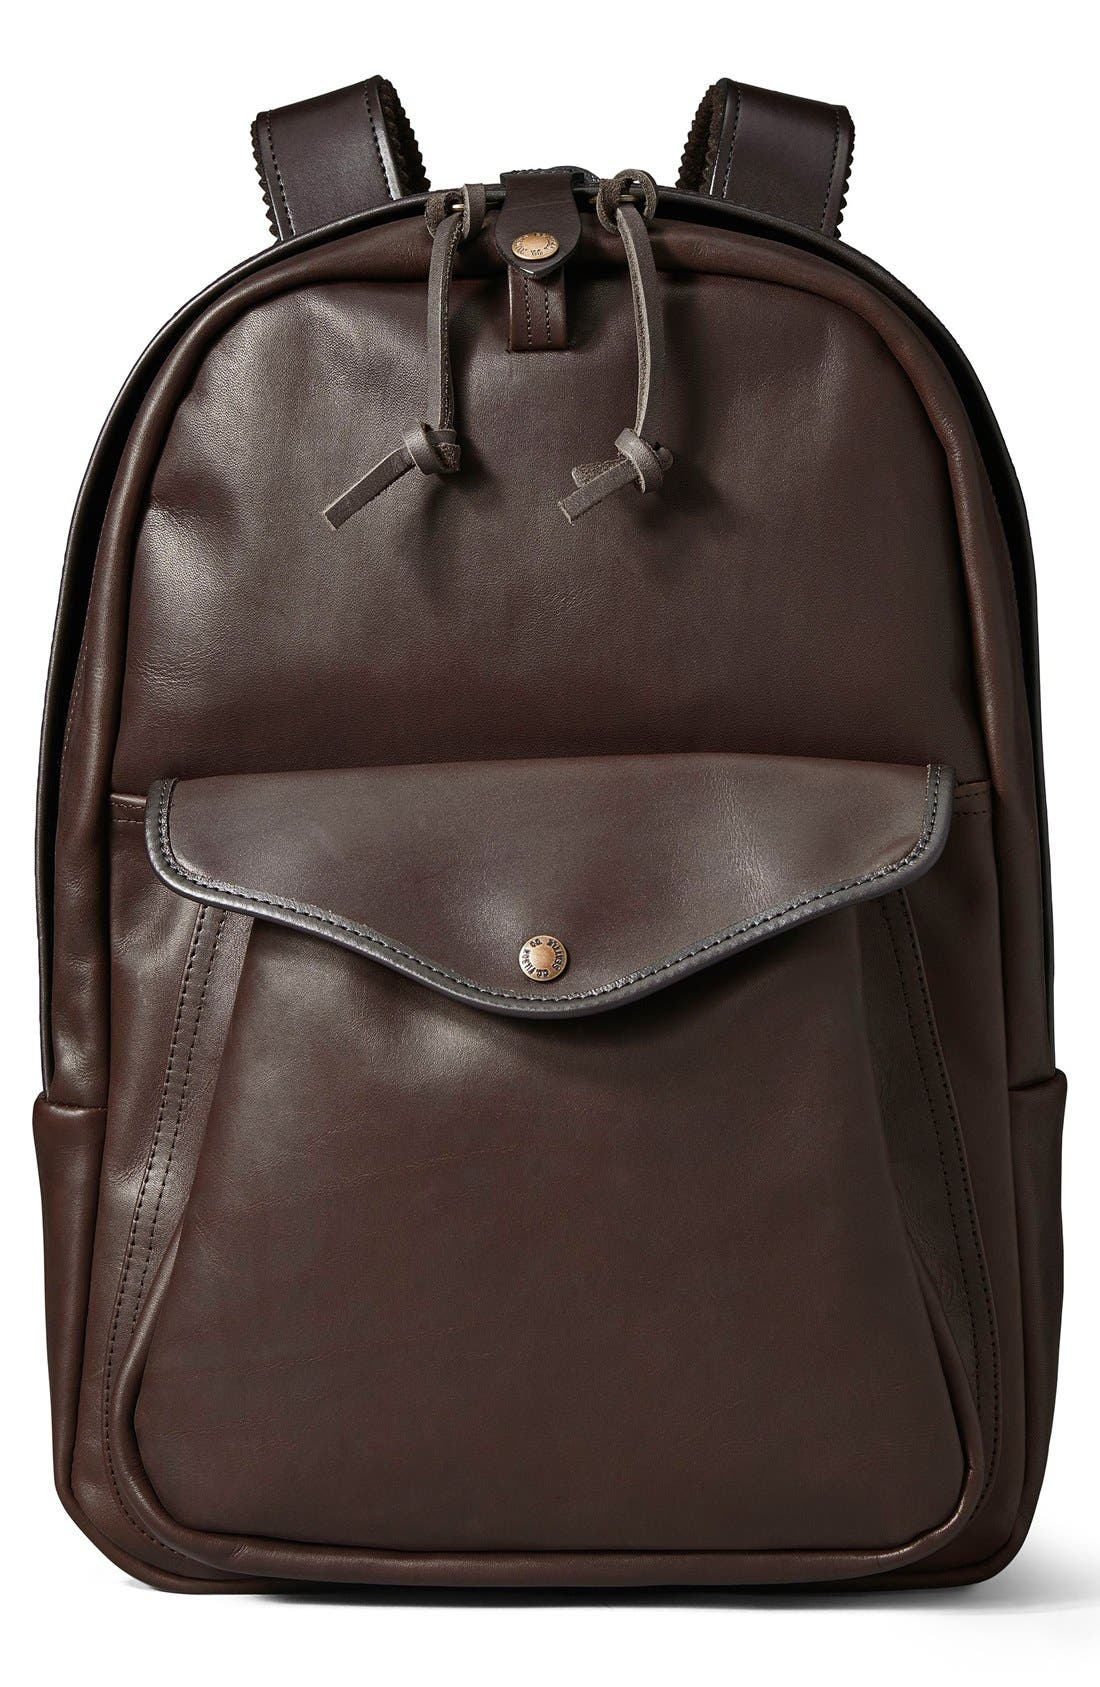 FILSON,                             Weatherproof Leather Backpack,                             Main thumbnail 1, color,                             206